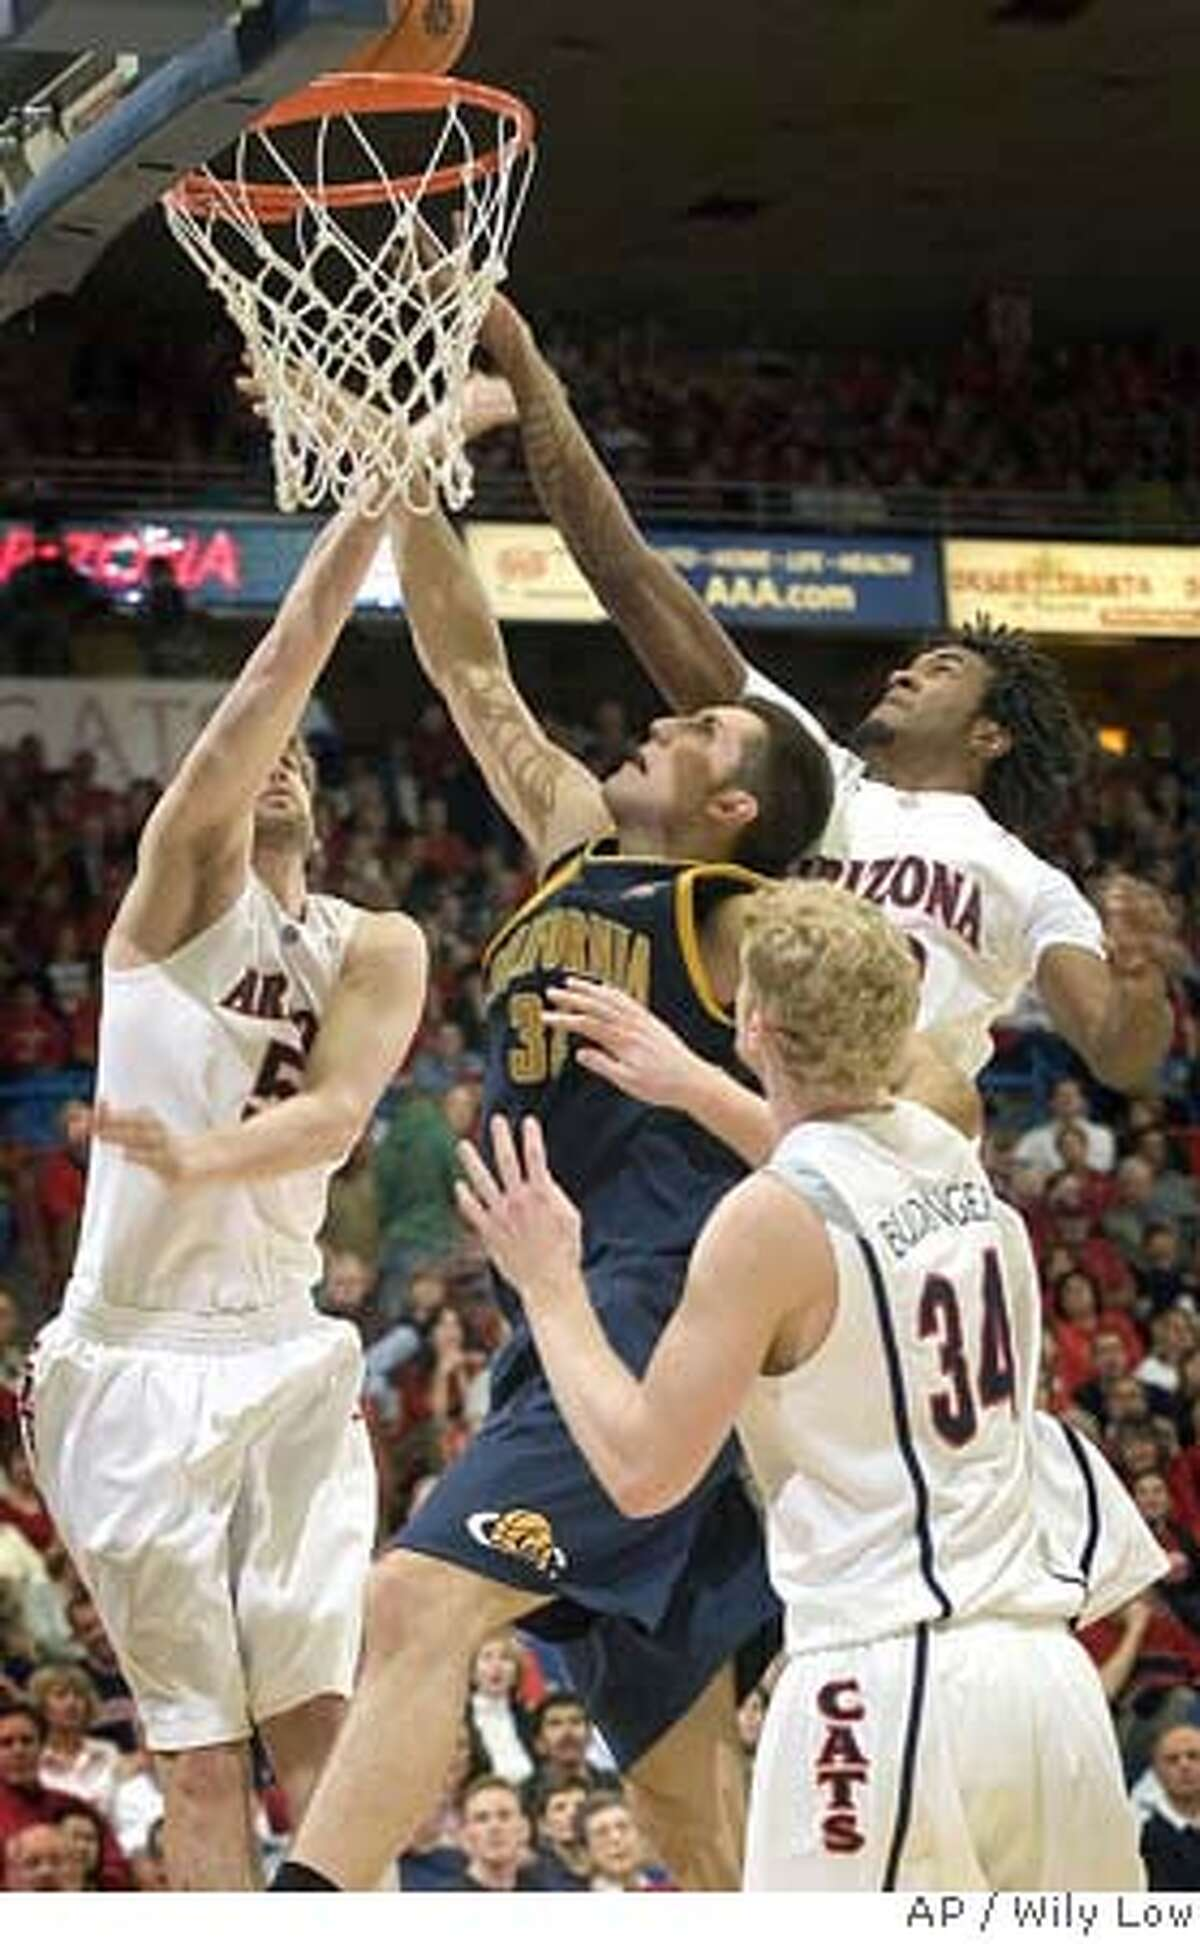 California's Ryan Anderson, center, is surrounded by Arizona's Jordan Hill, right, Chase Budinger (34), and Kirk Walters, left, in the first half of a college basketball game in Tucson, Ariz., Thursday, Feb. 14, 2008. (AP Photo/Wily Low)